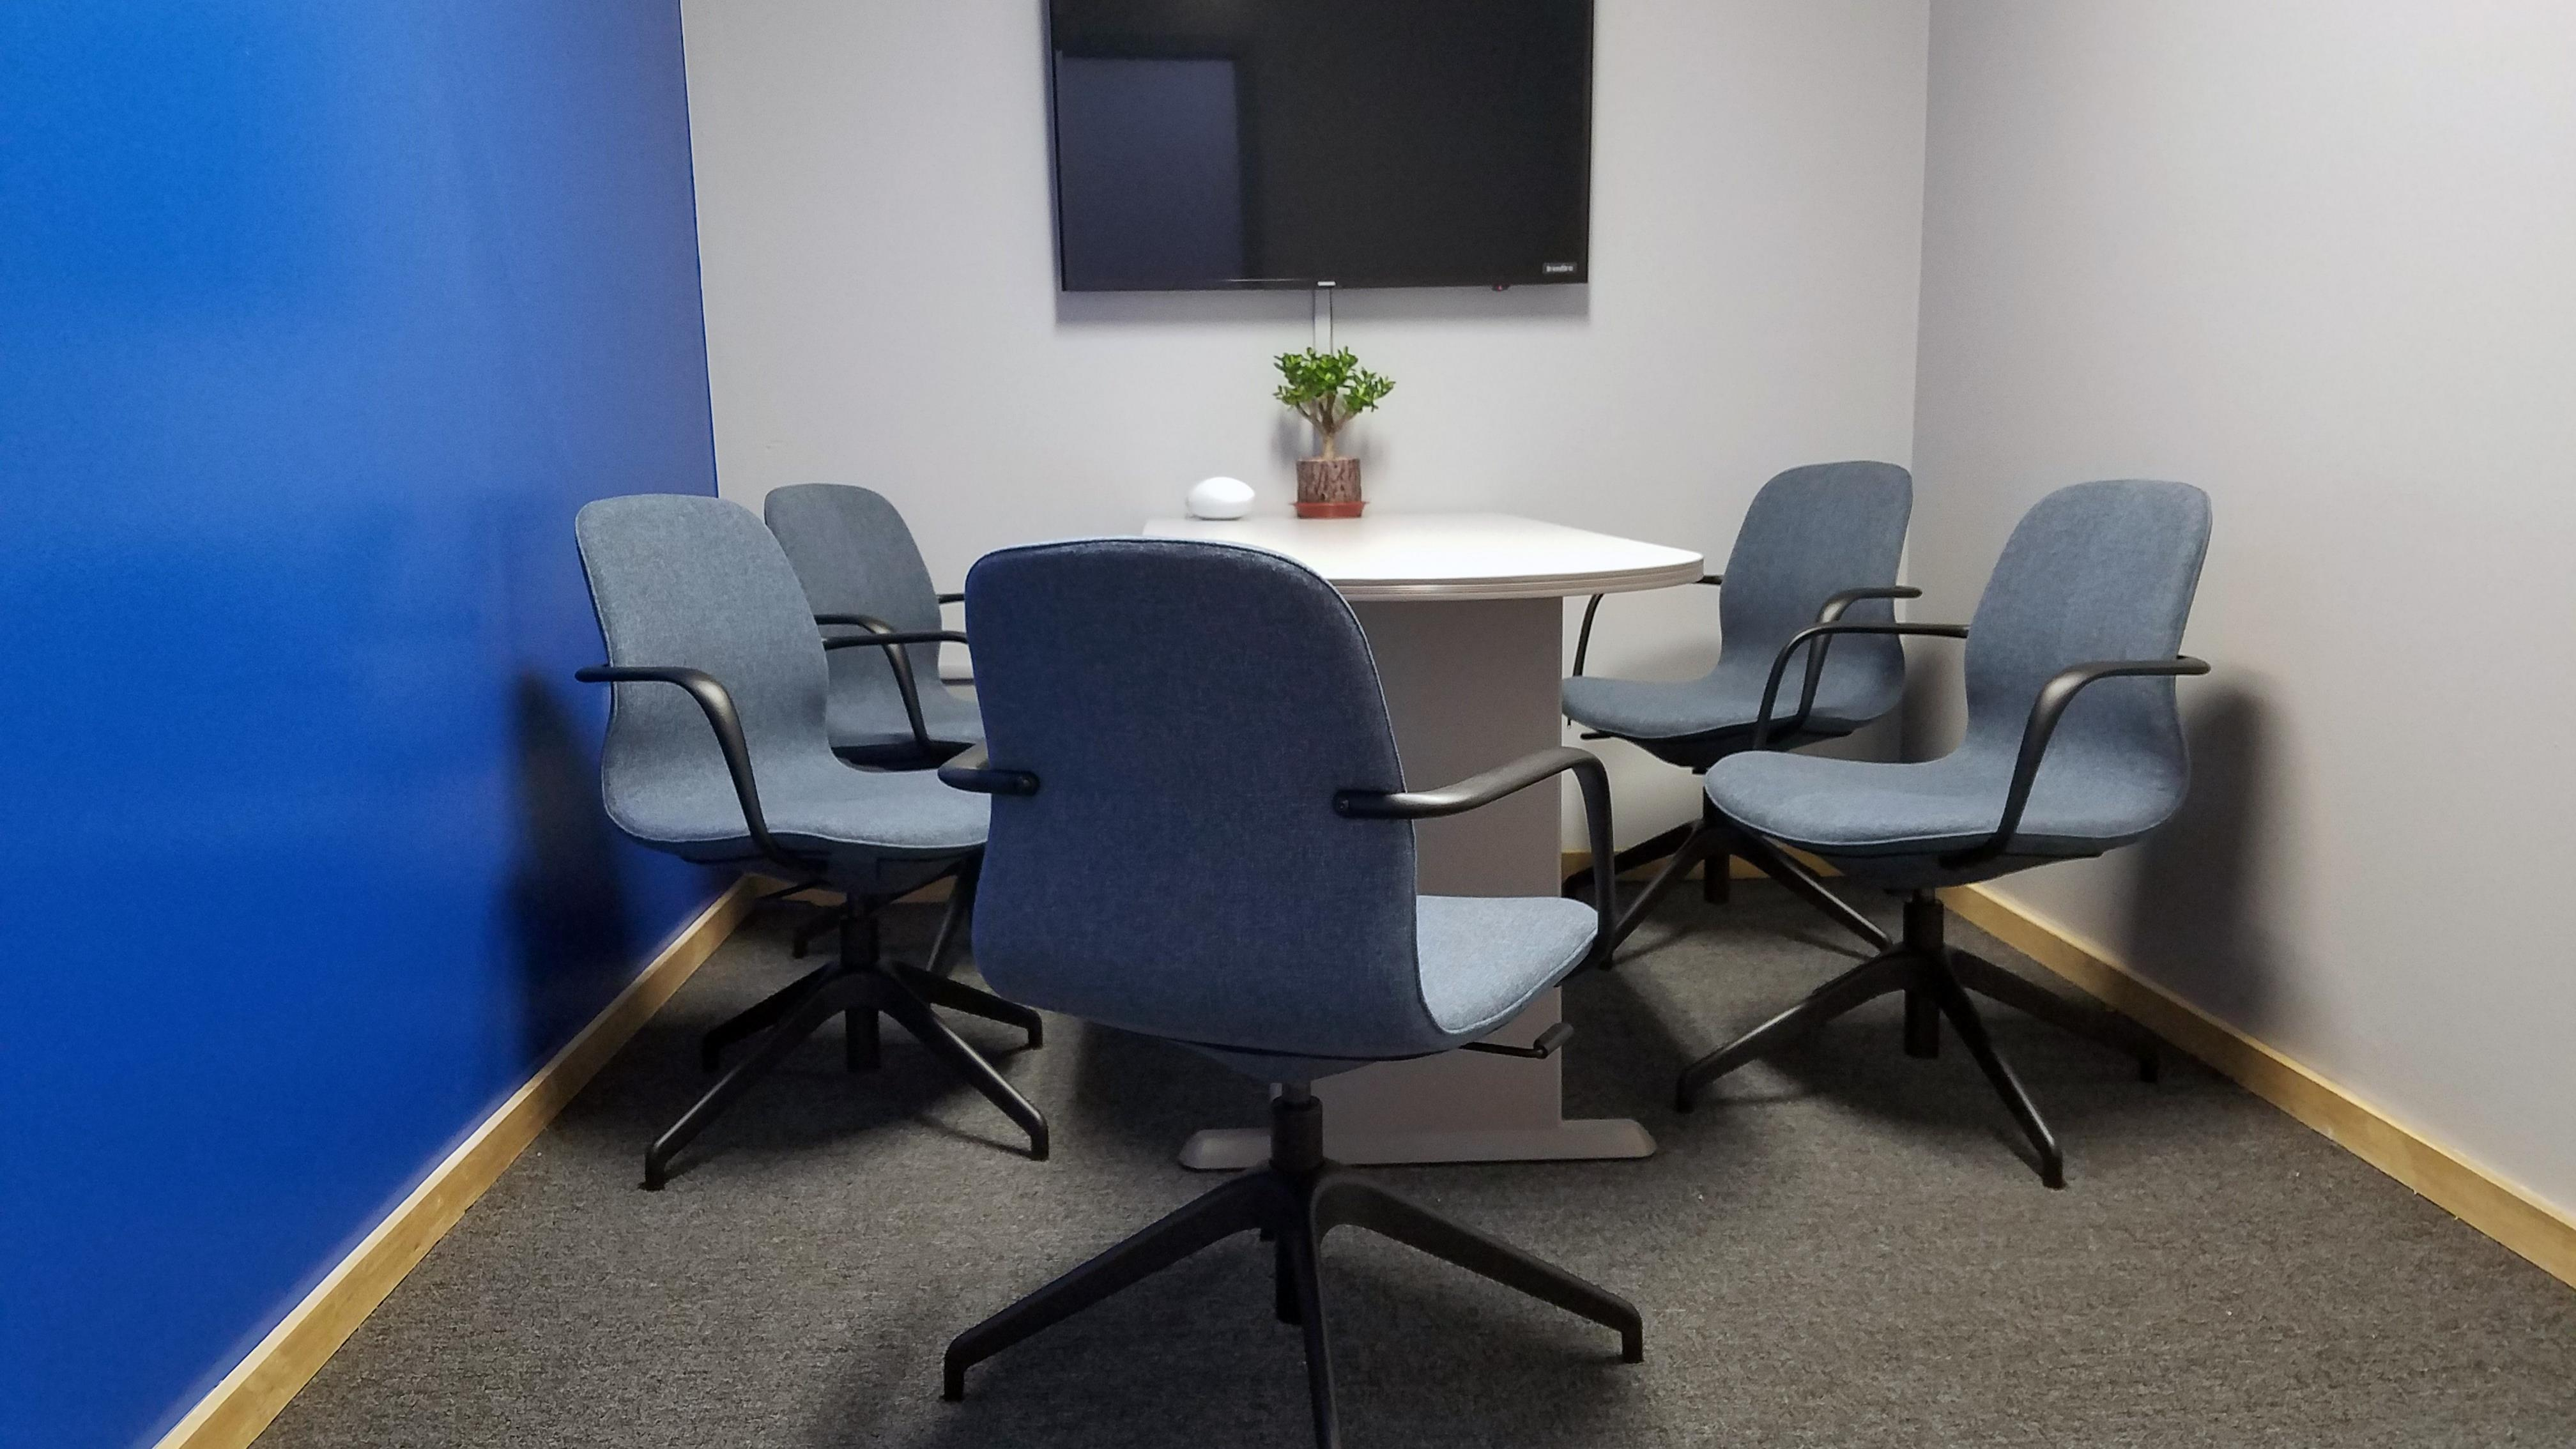 Ironfire - Professional Meeting Space for Five